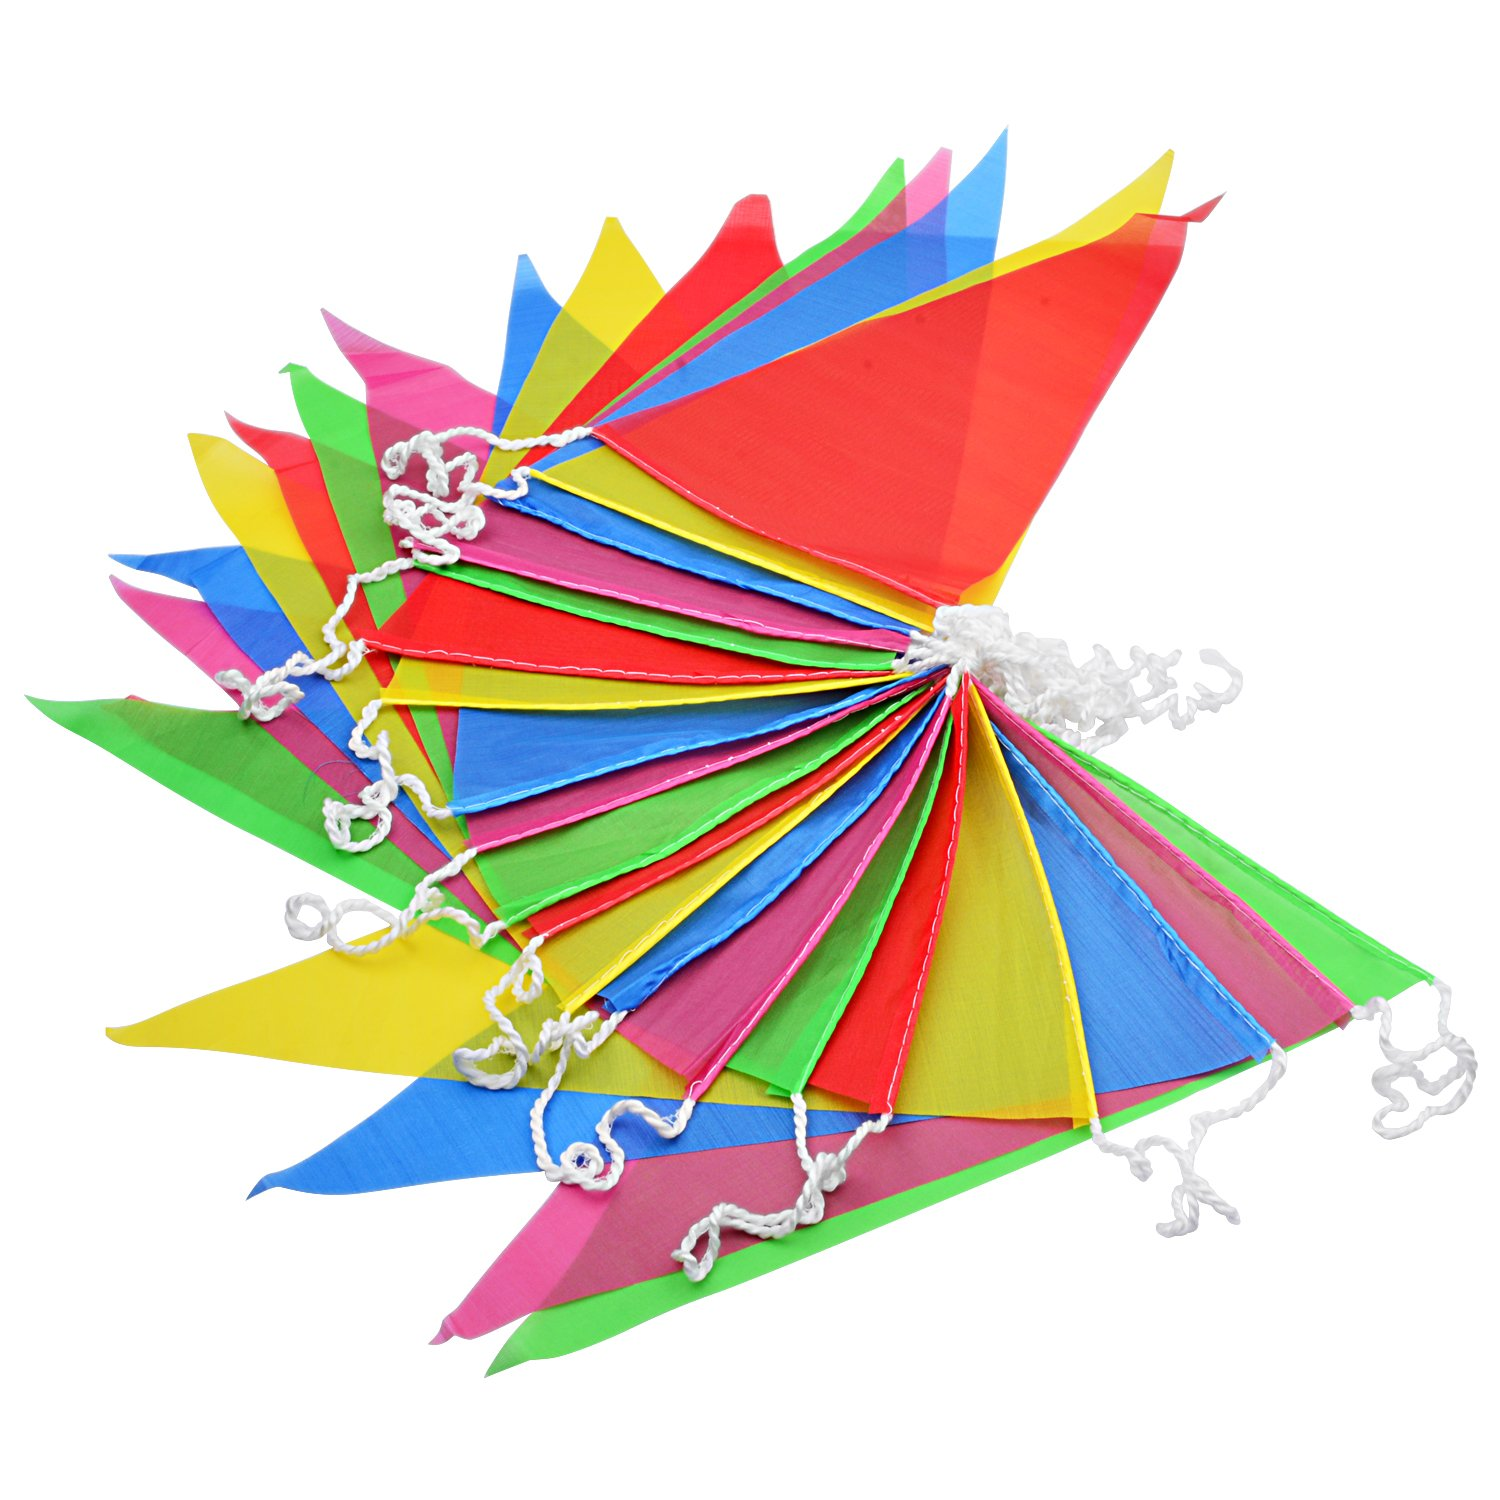 Joykey Multi-color Bunting Flags 100M Nylon Bunting Banner Braided String Pennant Banner for Wedding Birthday Party Outdoor Garden Decoration 200 Triangle Flags